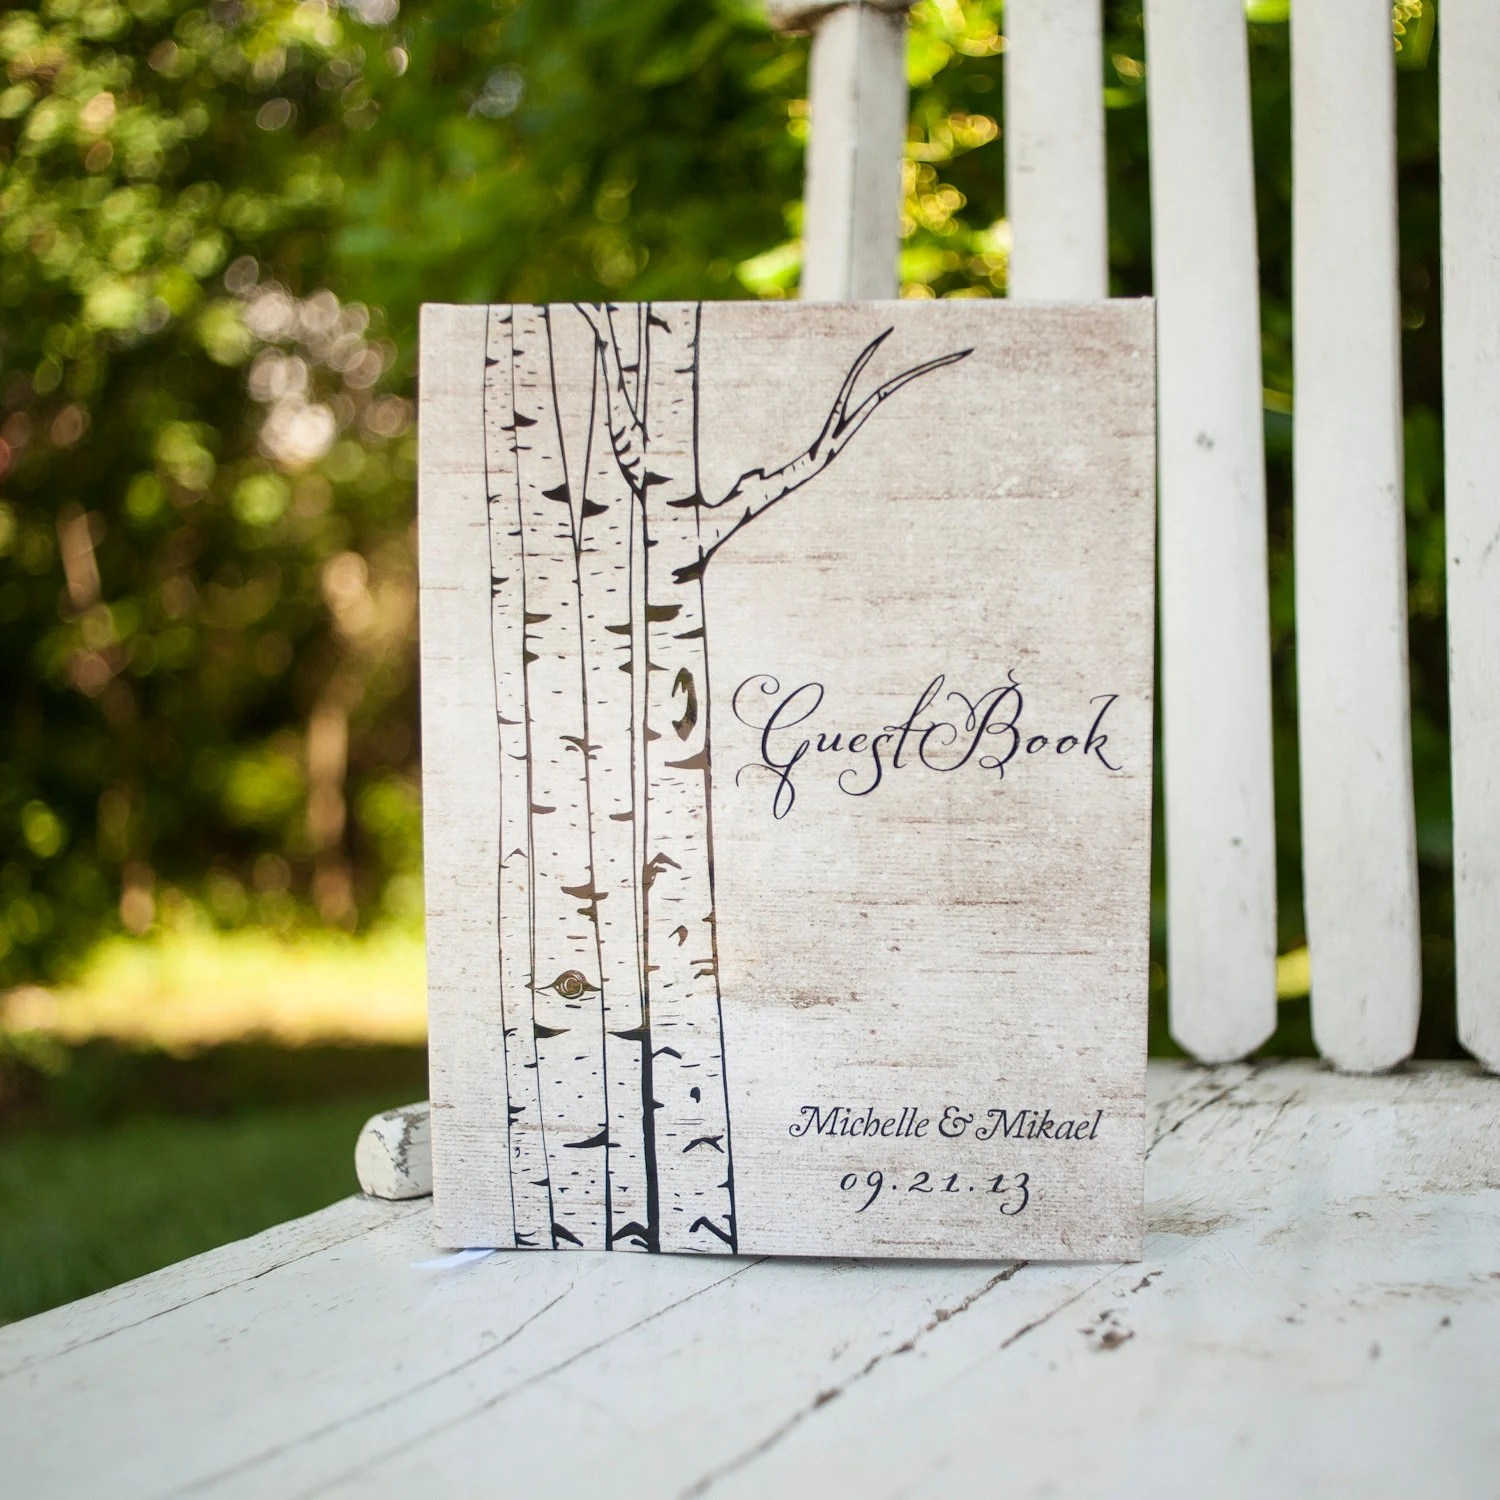 Rustic Wedding Guestbook, Guest Book - Personalized, Customized, Wedding Date and names, trees, woodland wedding, birch bark - inoroutmedia